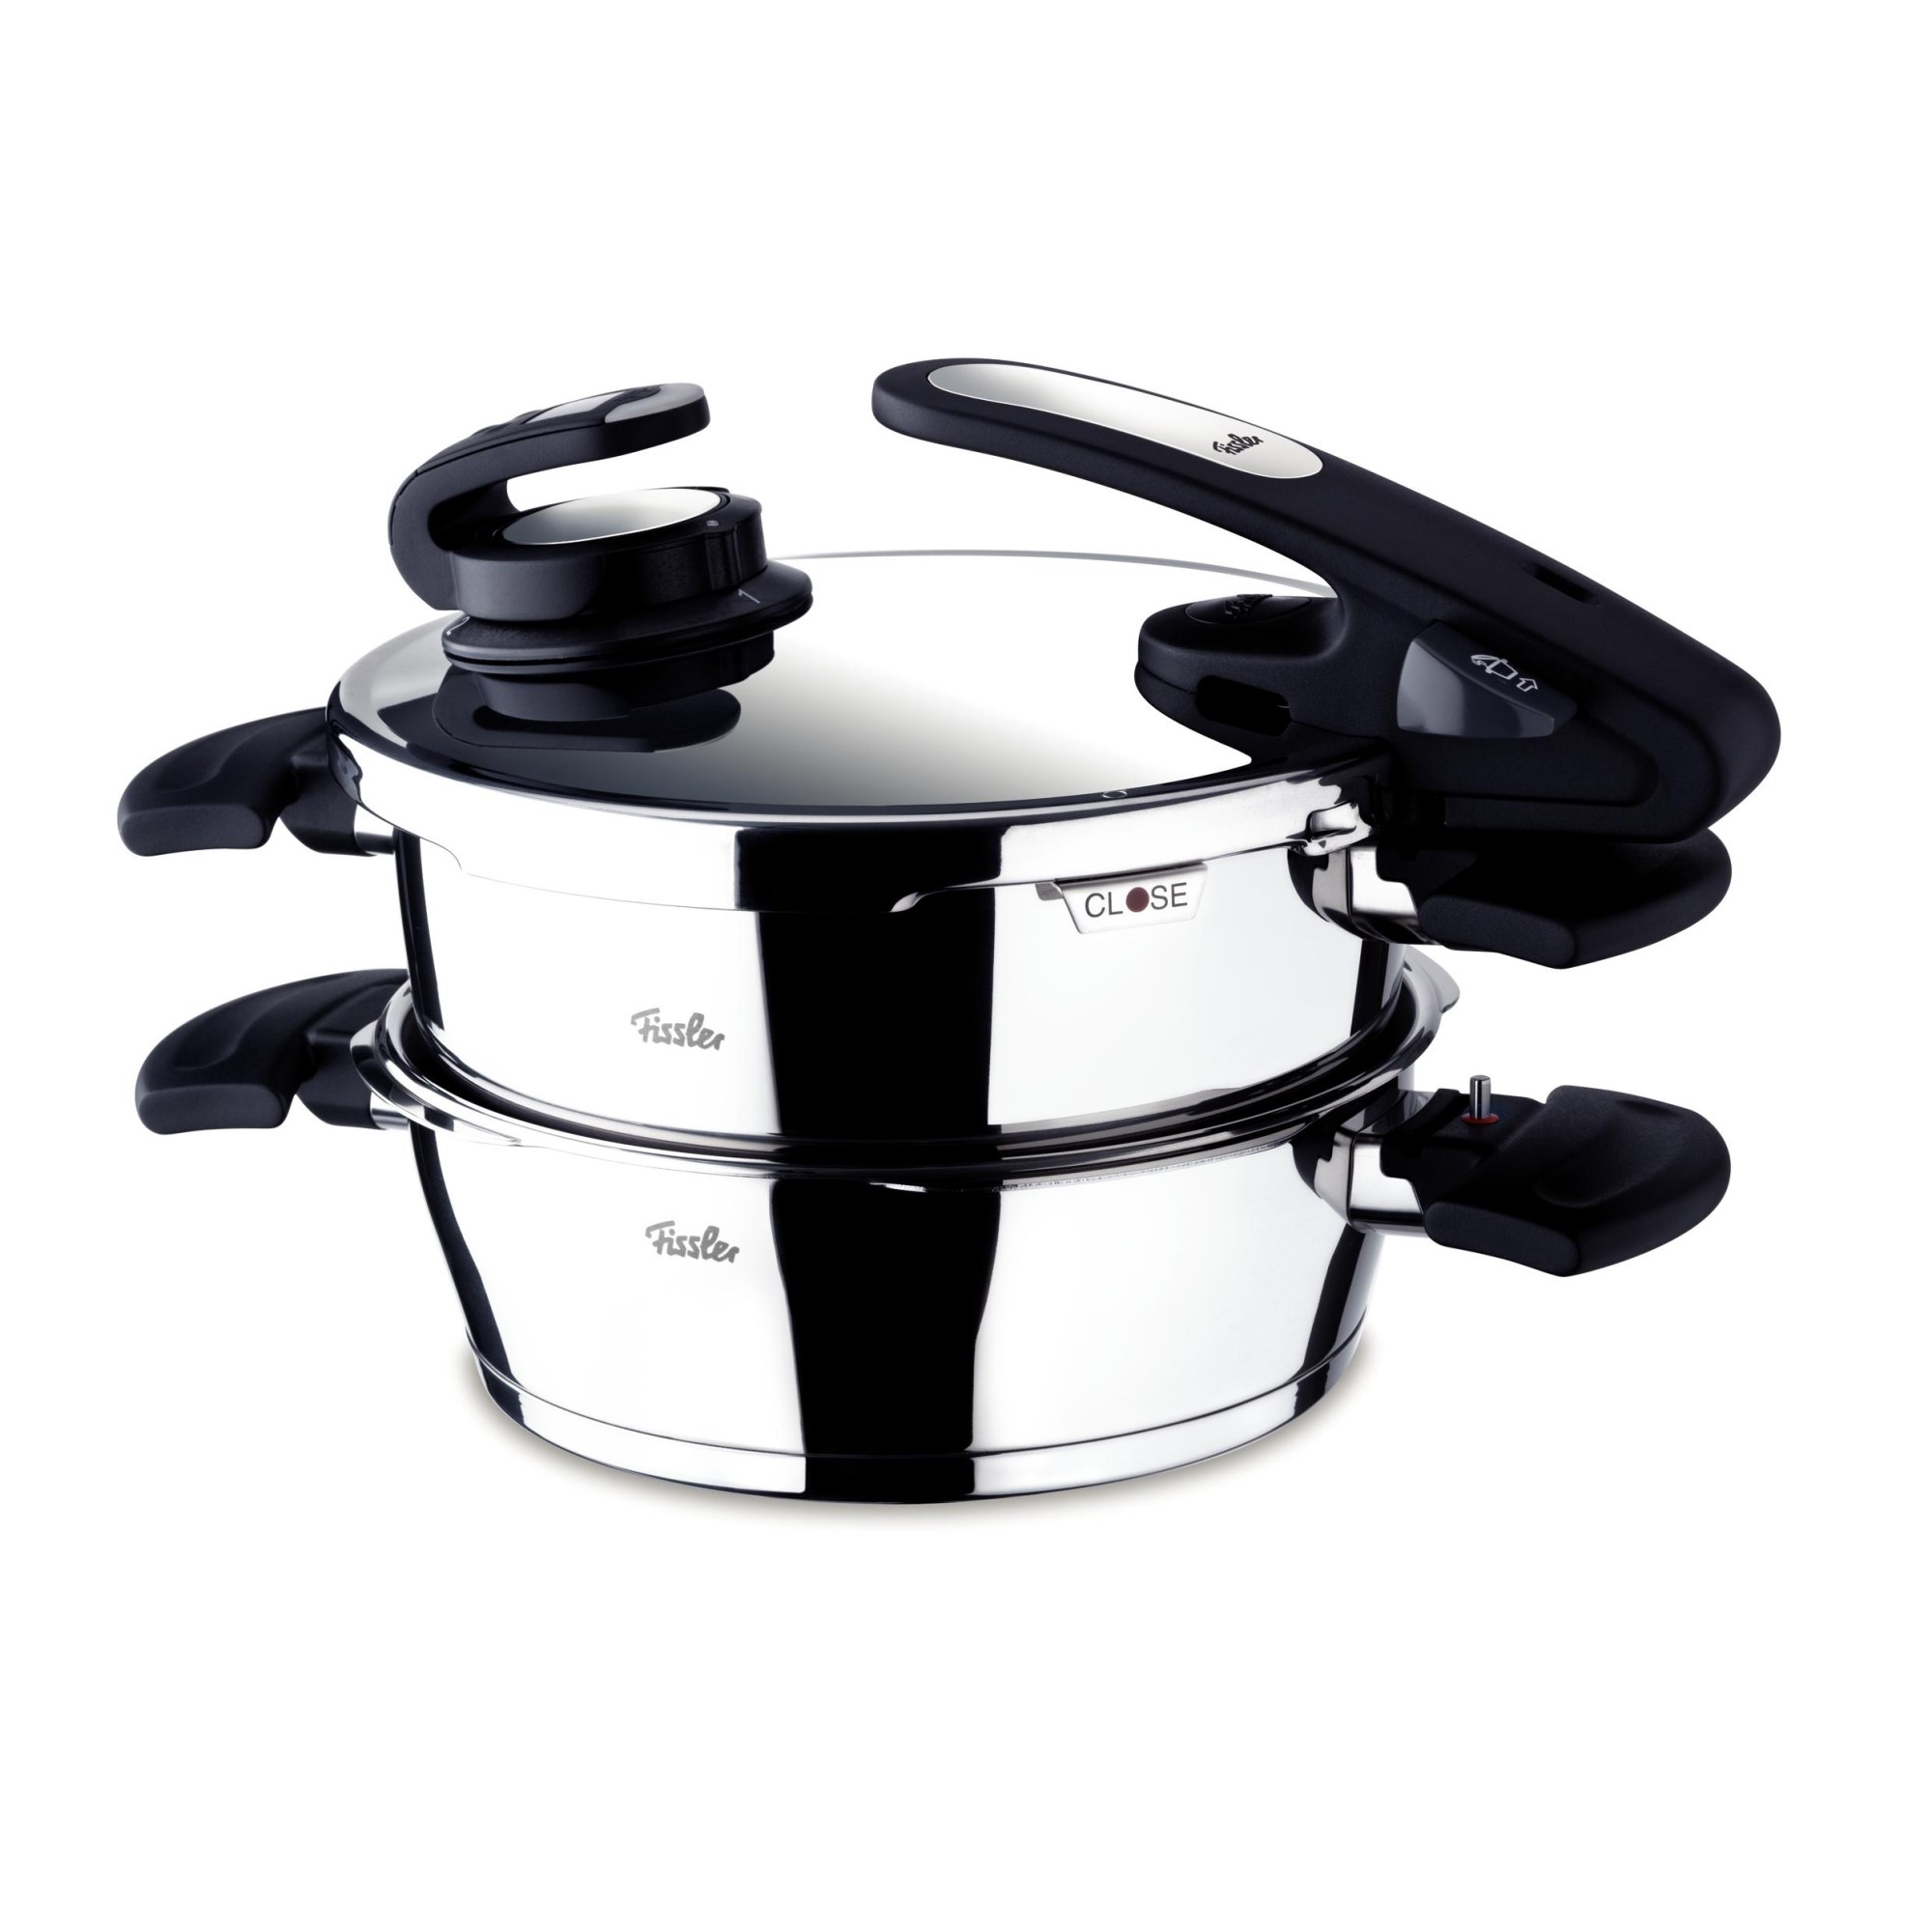 fissler schnellkochtopf vitavit edition 4 5 2 5 liter im set ebay. Black Bedroom Furniture Sets. Home Design Ideas